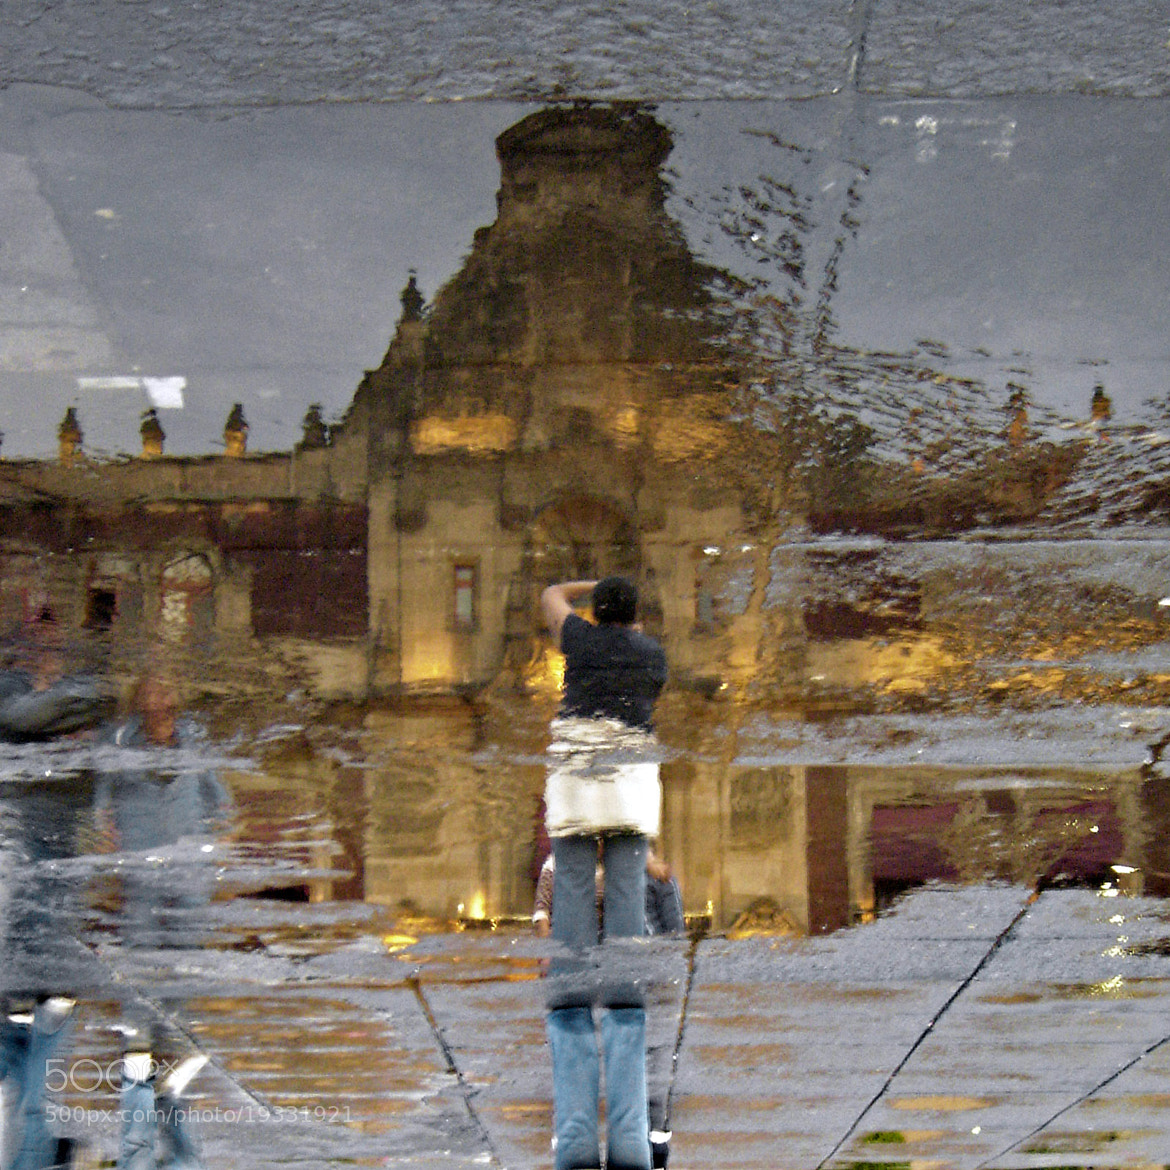 Photograph Palace reflected / Palacio reflejado by Luis Alberto Alvarez on 500px